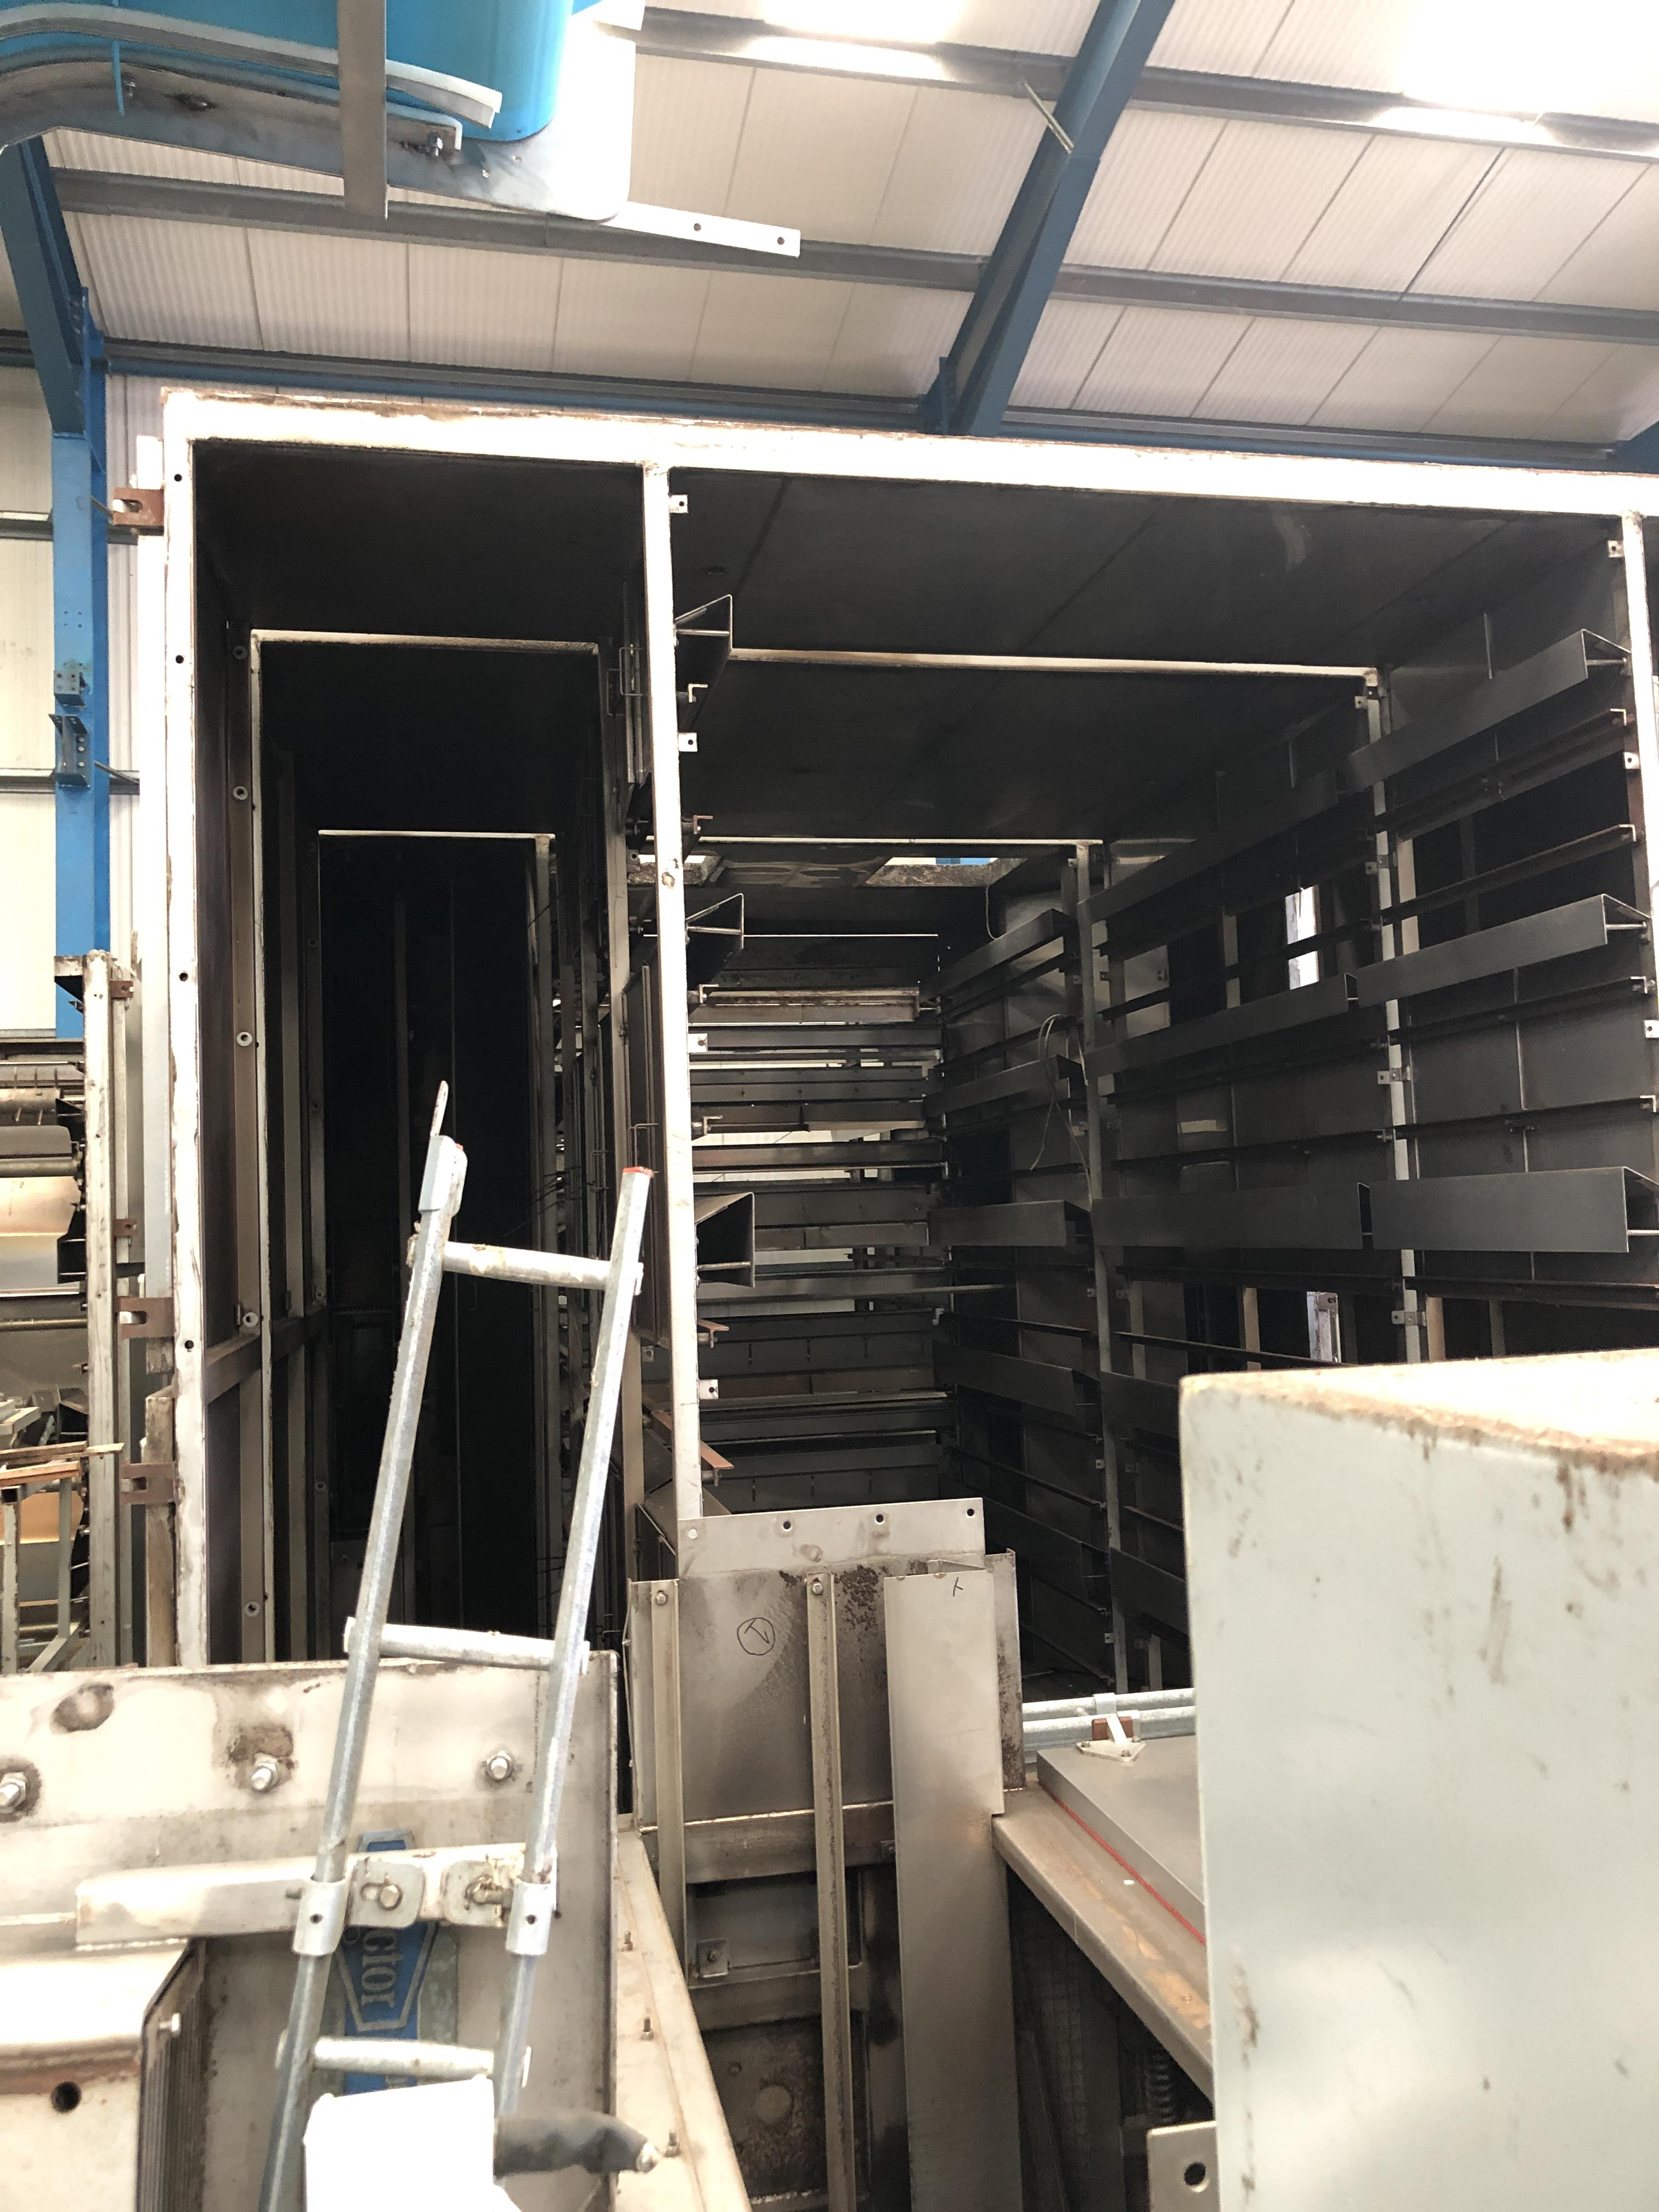 Proctor FIVE PASS GAS FIRED DRYER (dismantled by Blackrow Engineering), approx. 15m long x 5m wide x - Image 7 of 7